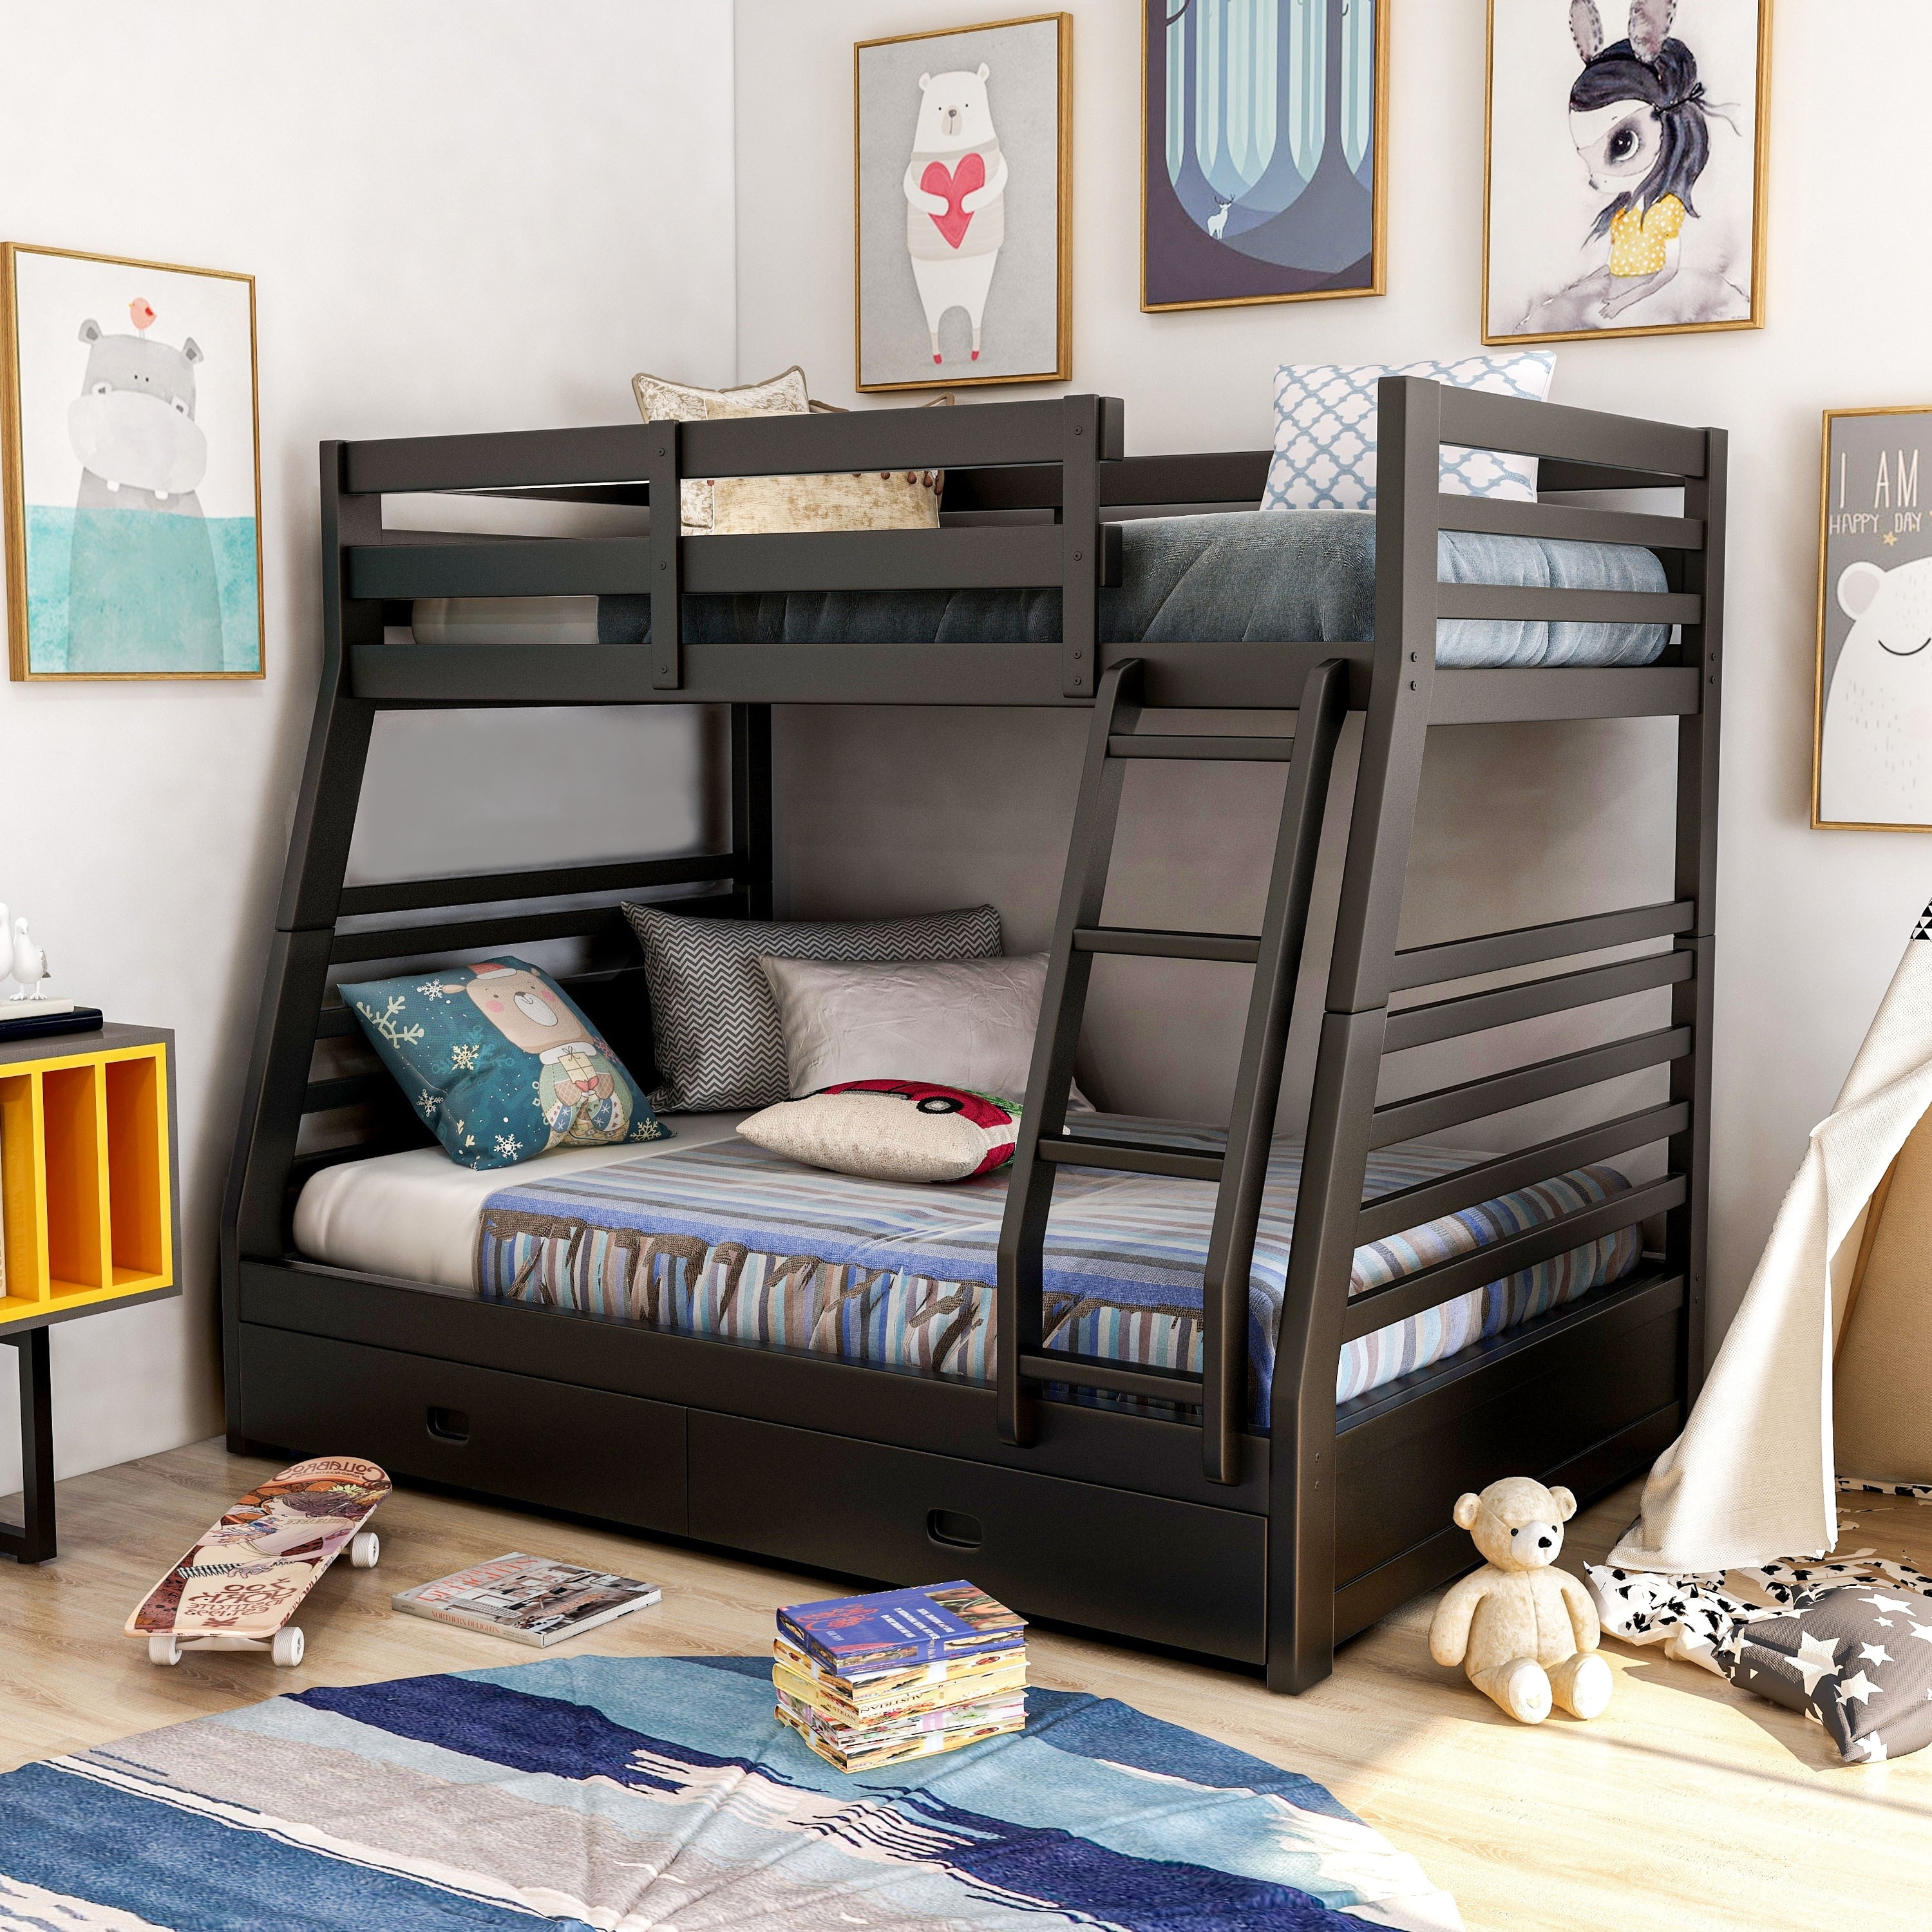 Bunk Bed Sets On Sale Cheaper Than Retail Price Buy Clothing Accessories And Lifestyle Products For Women Men